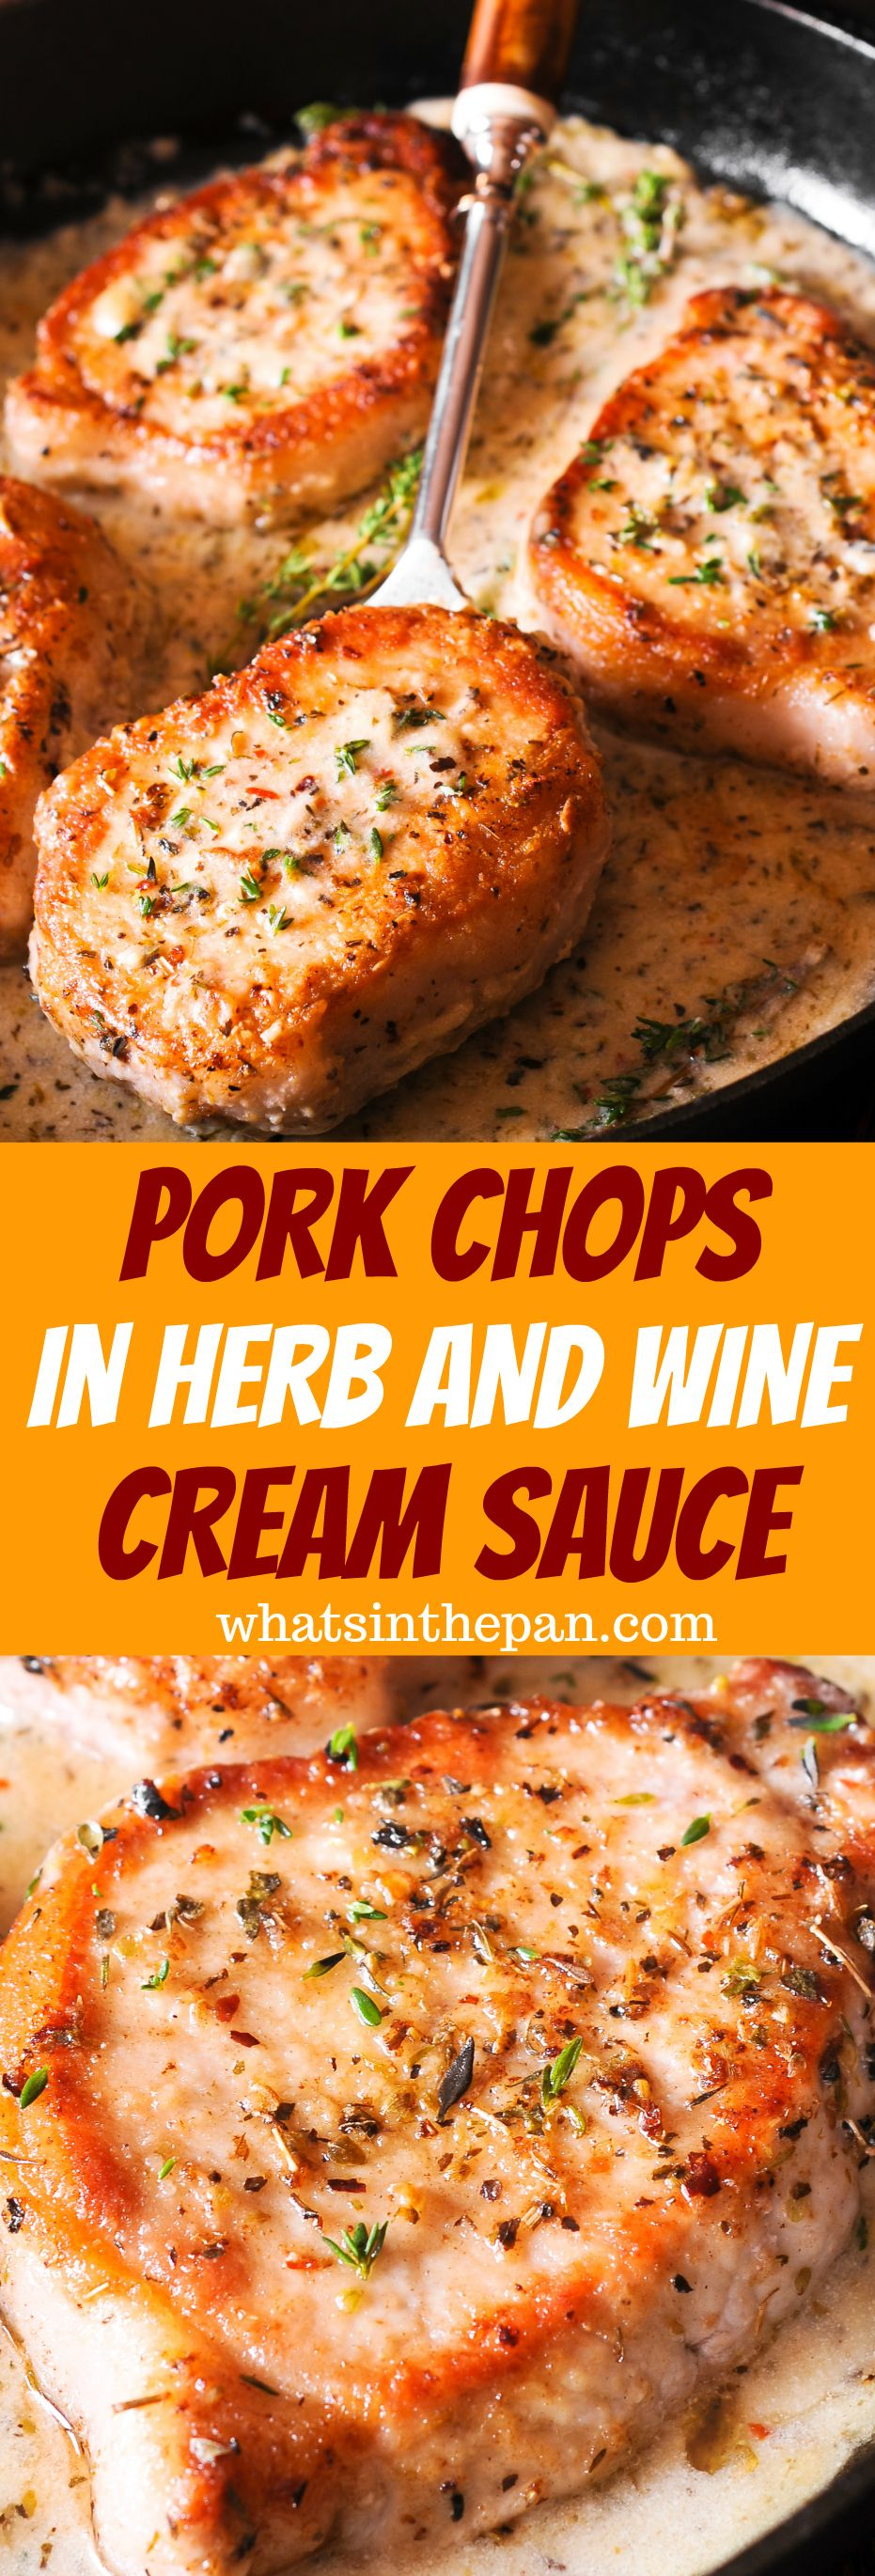 Pork Chops in Herb and Wine Cream Sauce images